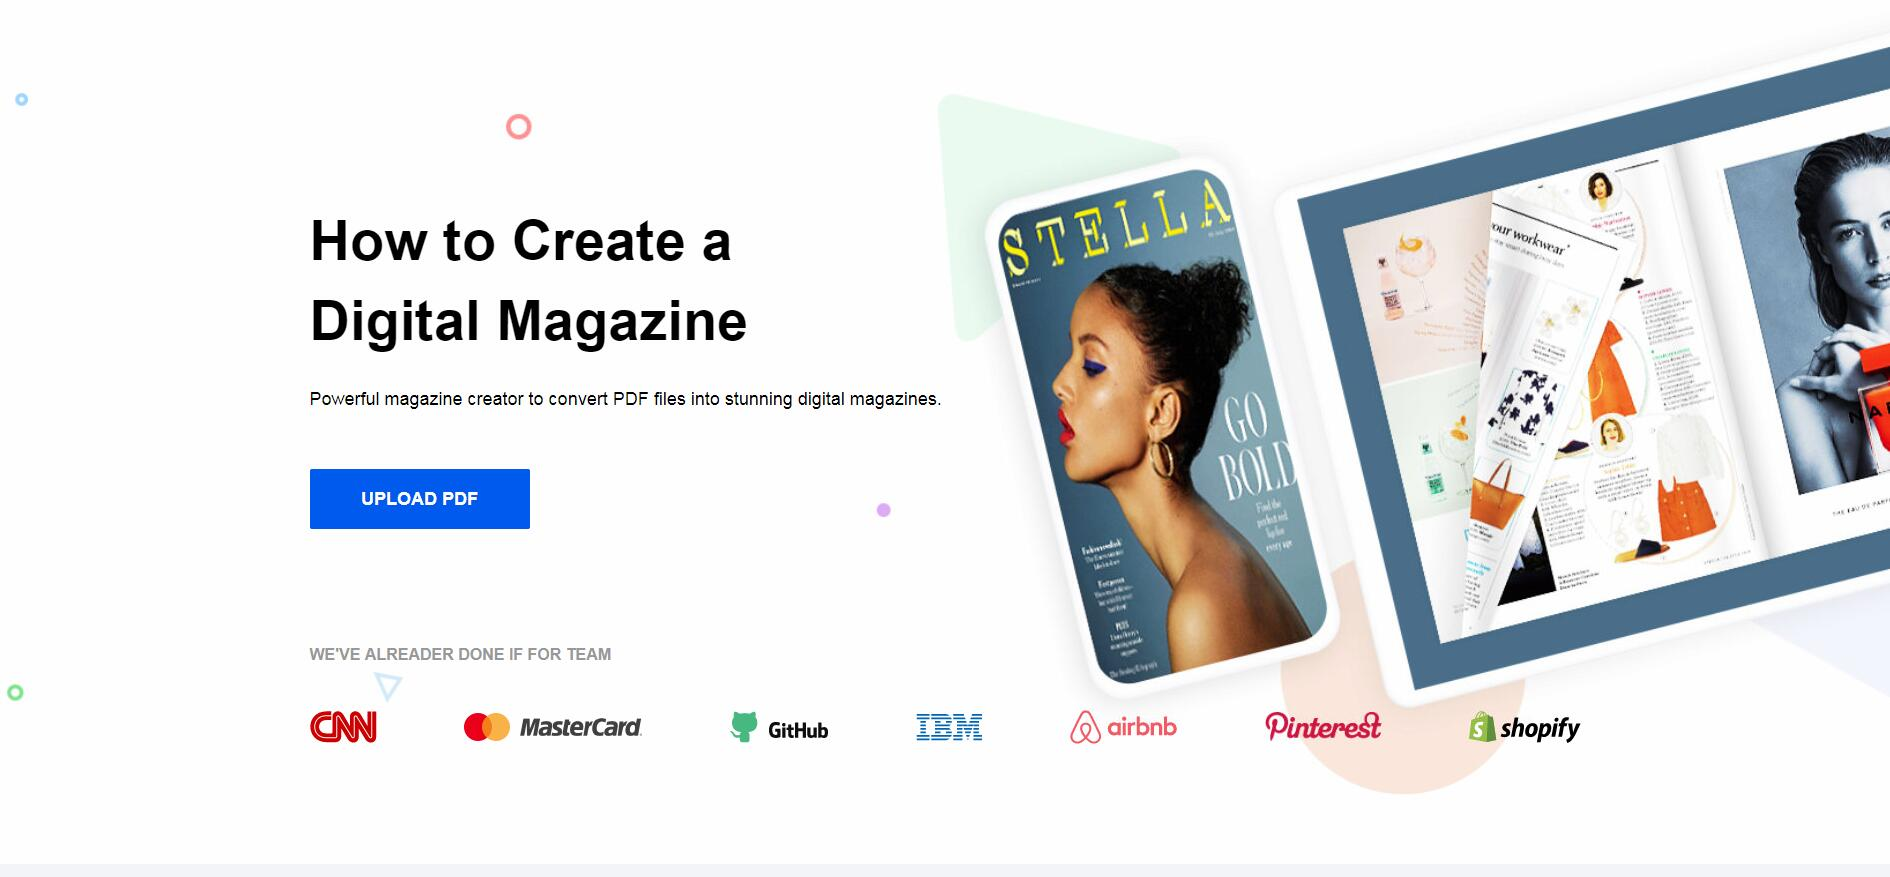 FlipHTML5 Gives Ideas on How to Create a Digital Magazine